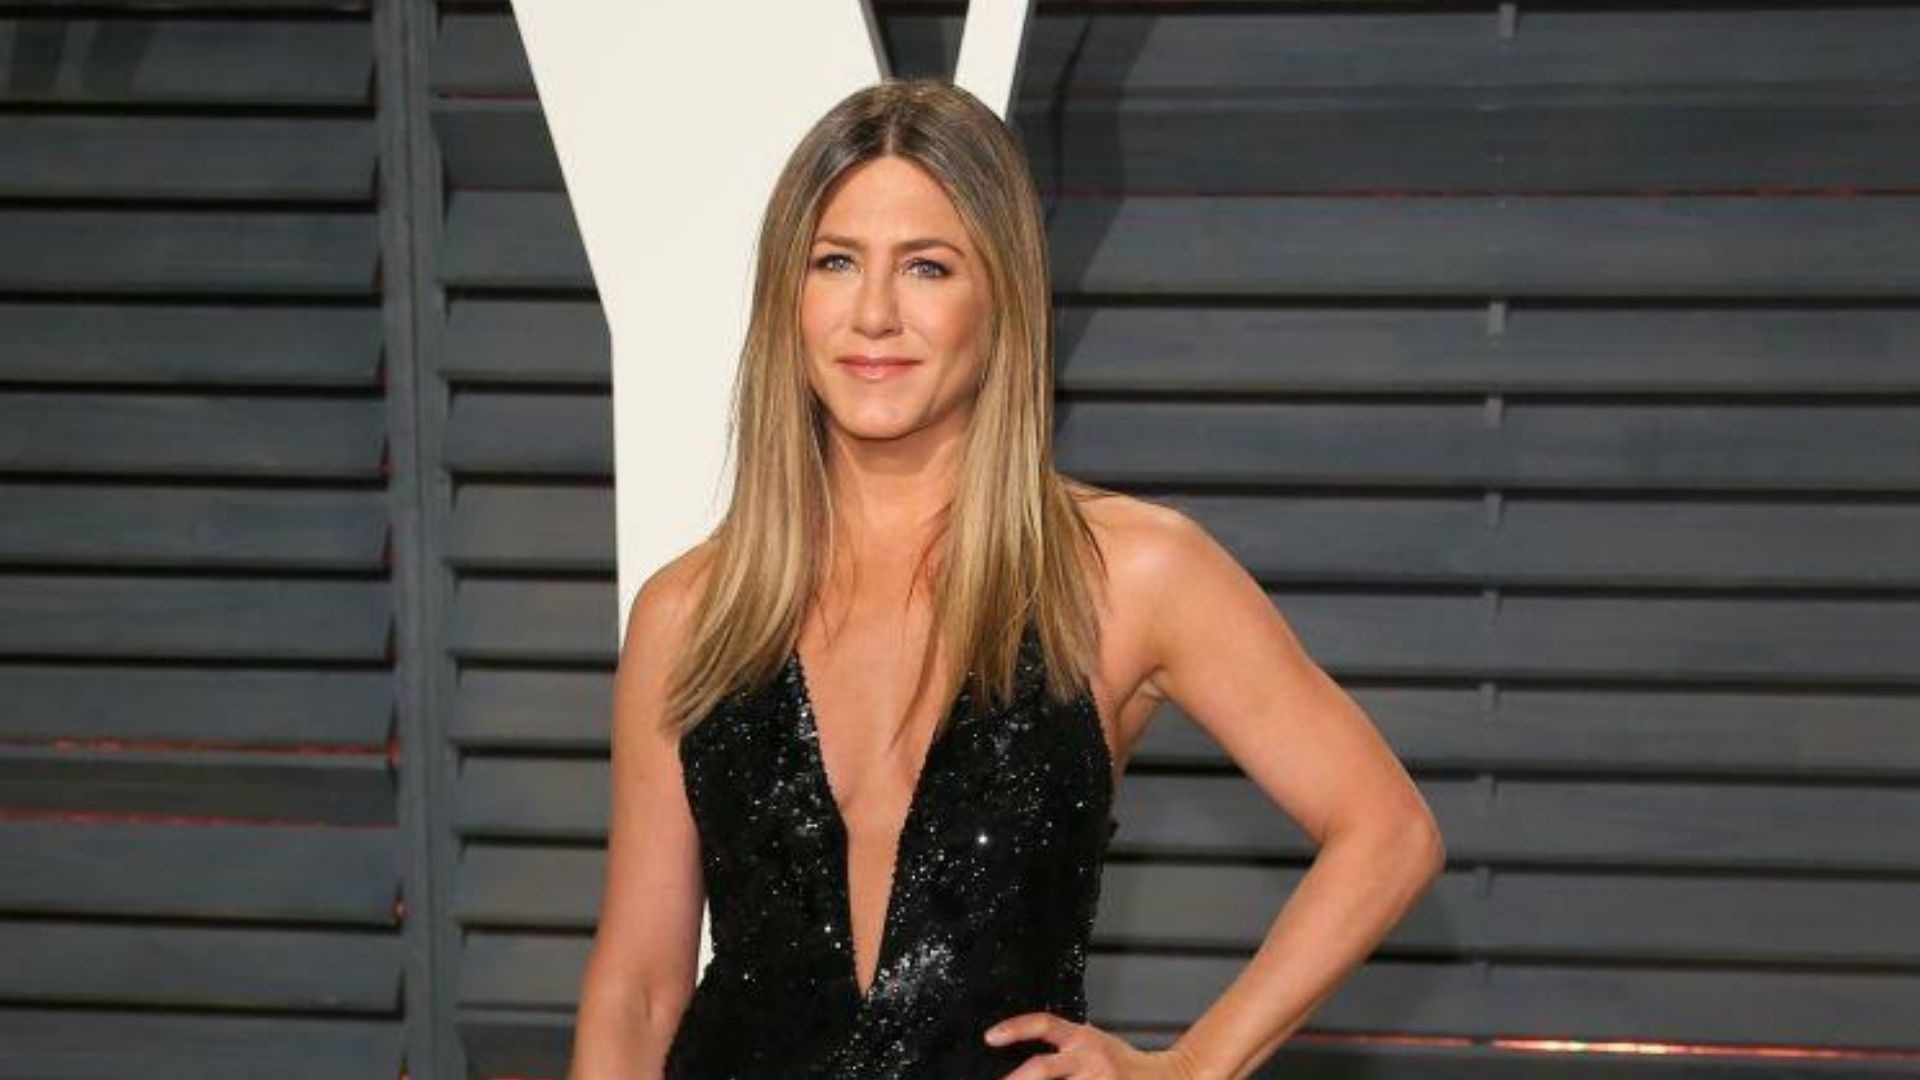 The 'Non-Diet' Diet Jennifer Aniston Swears By To Maintain Her Lean Physique